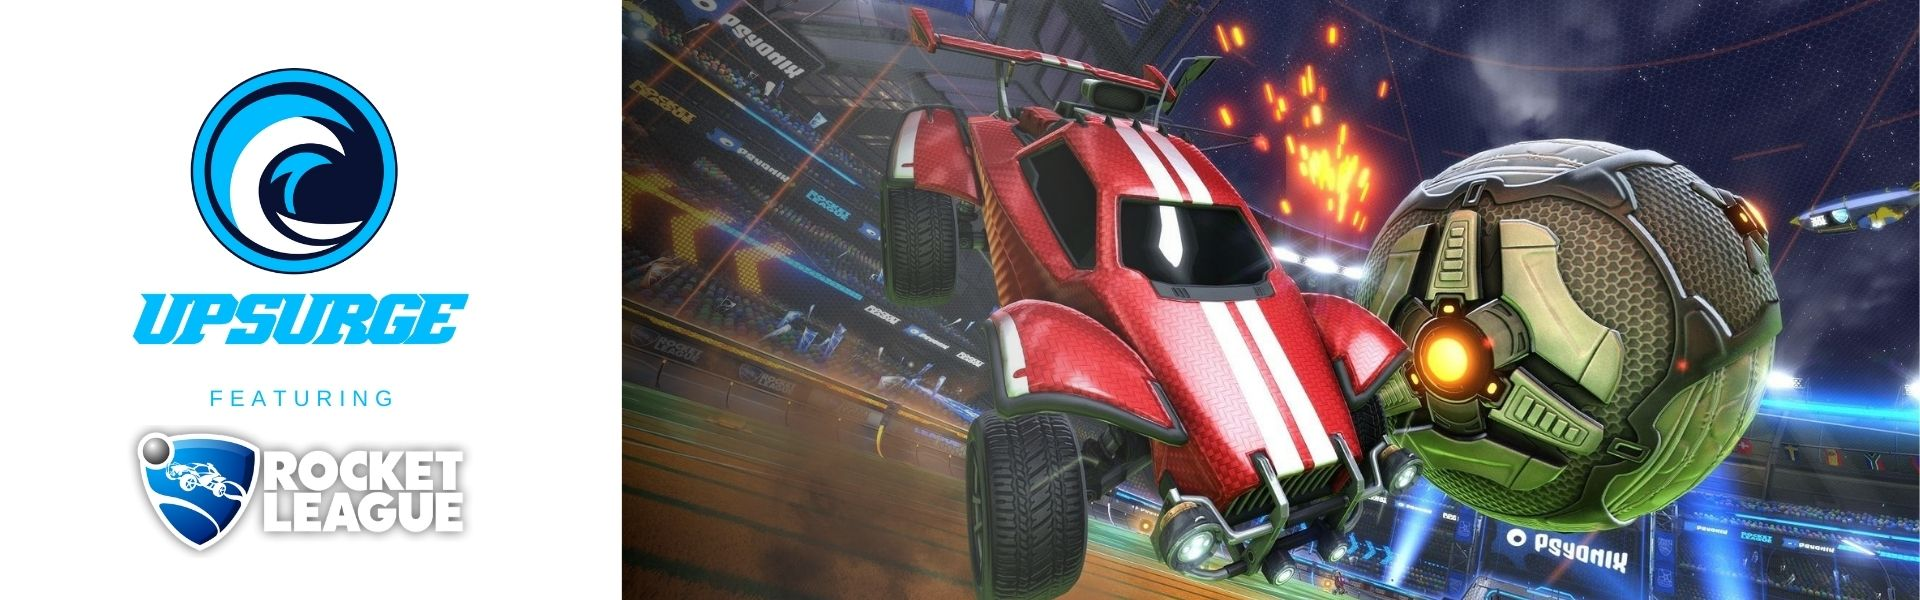 Upsurge Contenders League - Rocket League - Winter 2021